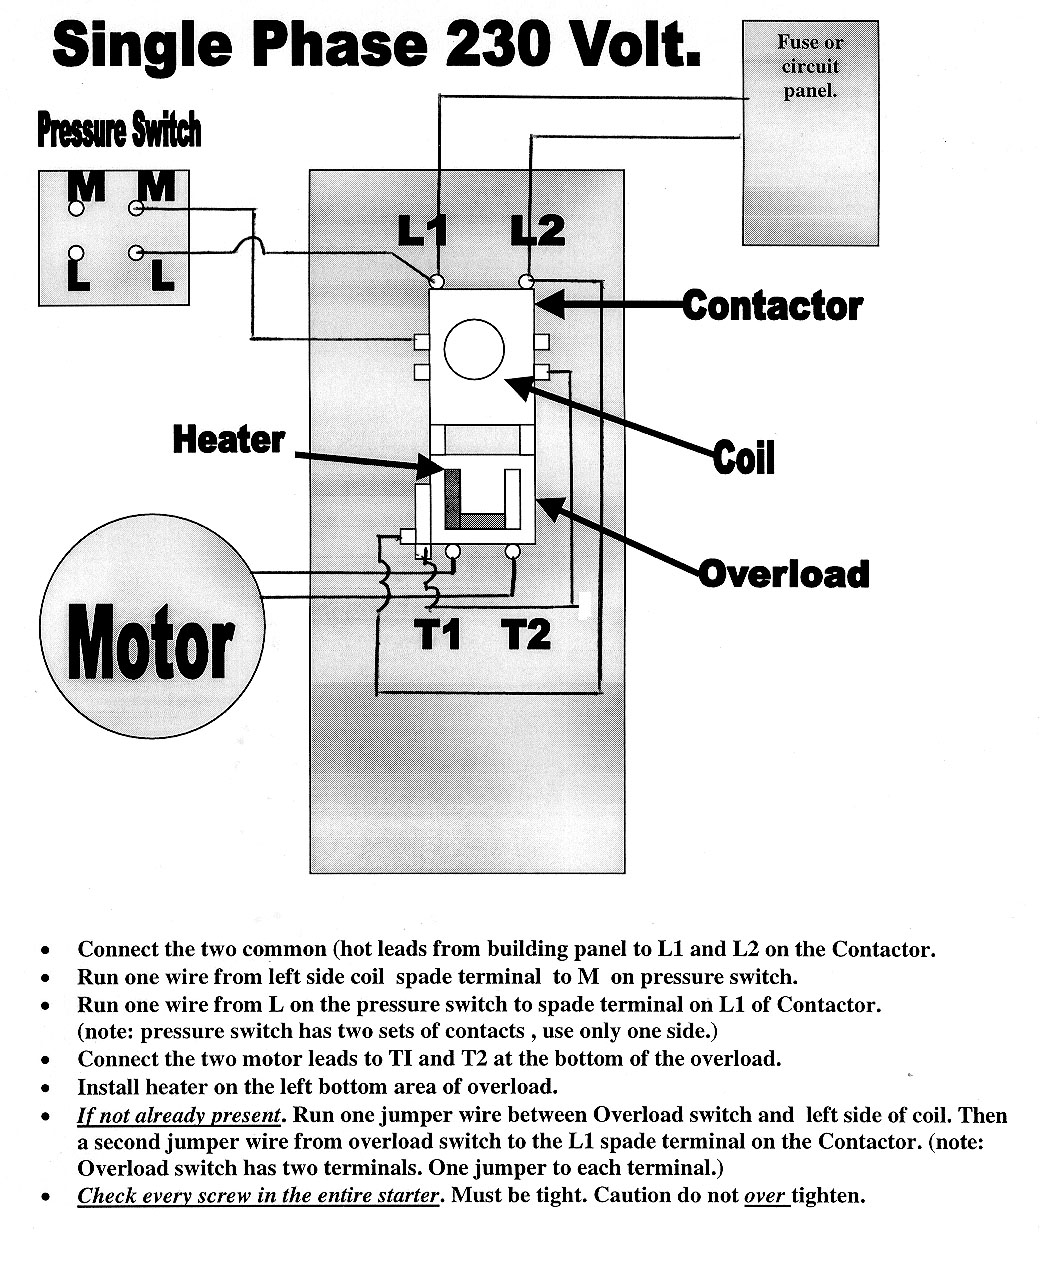 single phase motor starter wiring diagram pdf Collection-Fancy Electric Motor Wiring Diagram Single Phase 47 About Remodel With Three Weg 3 For Motors 9-g